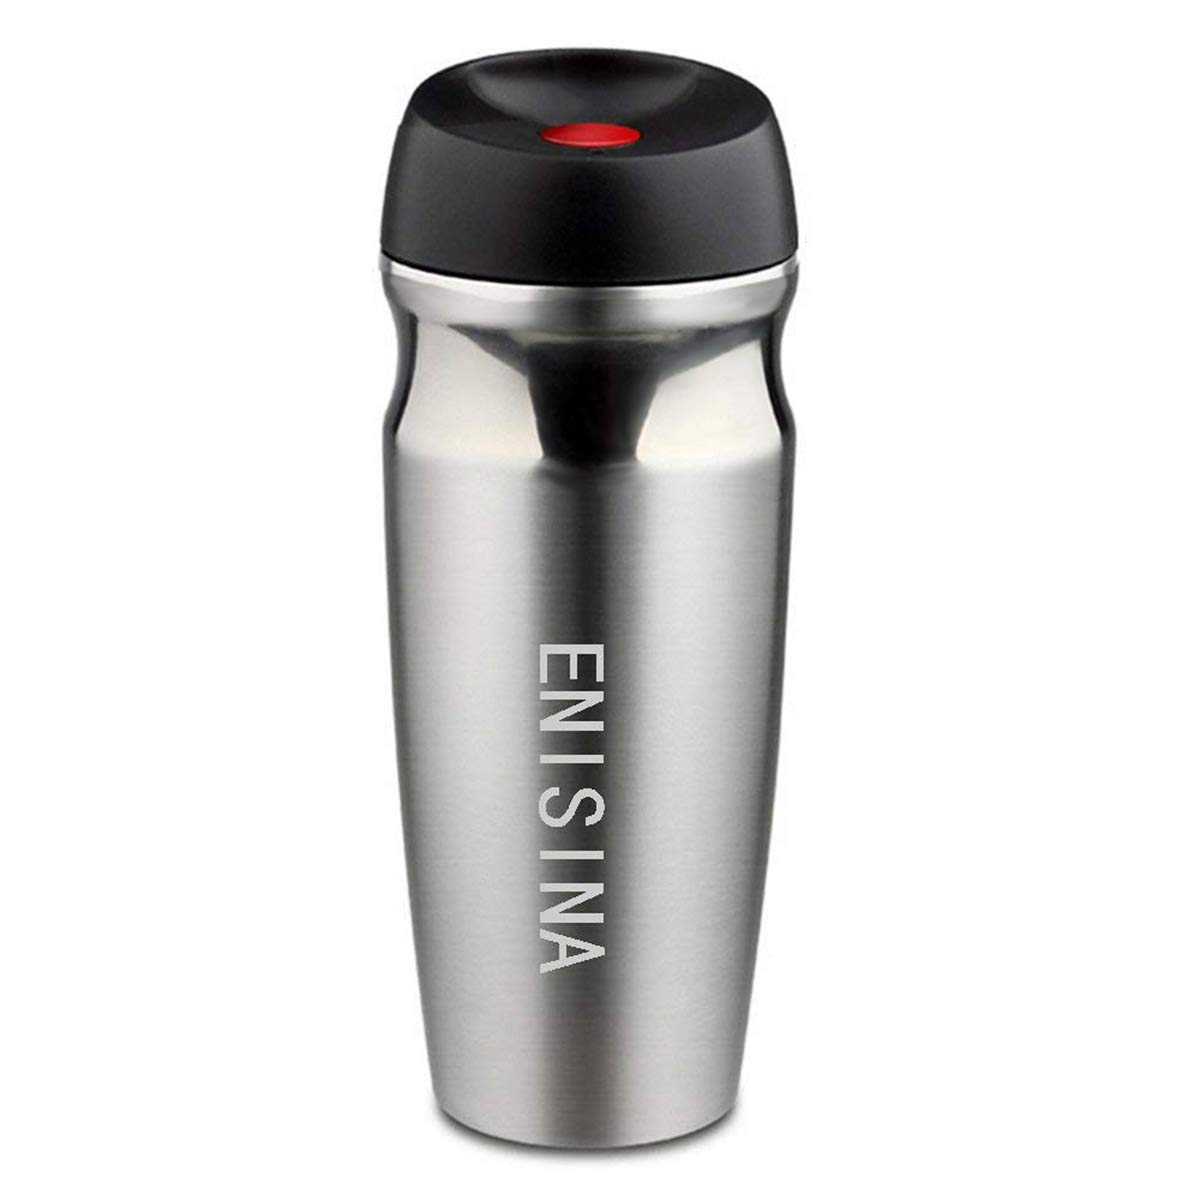 fa03d749607 Vacuum Travel Mug, One Hand Operated Thermal Mug, Coffee Mug Insulated, Travel  Mug Stainless Steel and Leakproof for Hot and Cold Drink (350 ML): ...